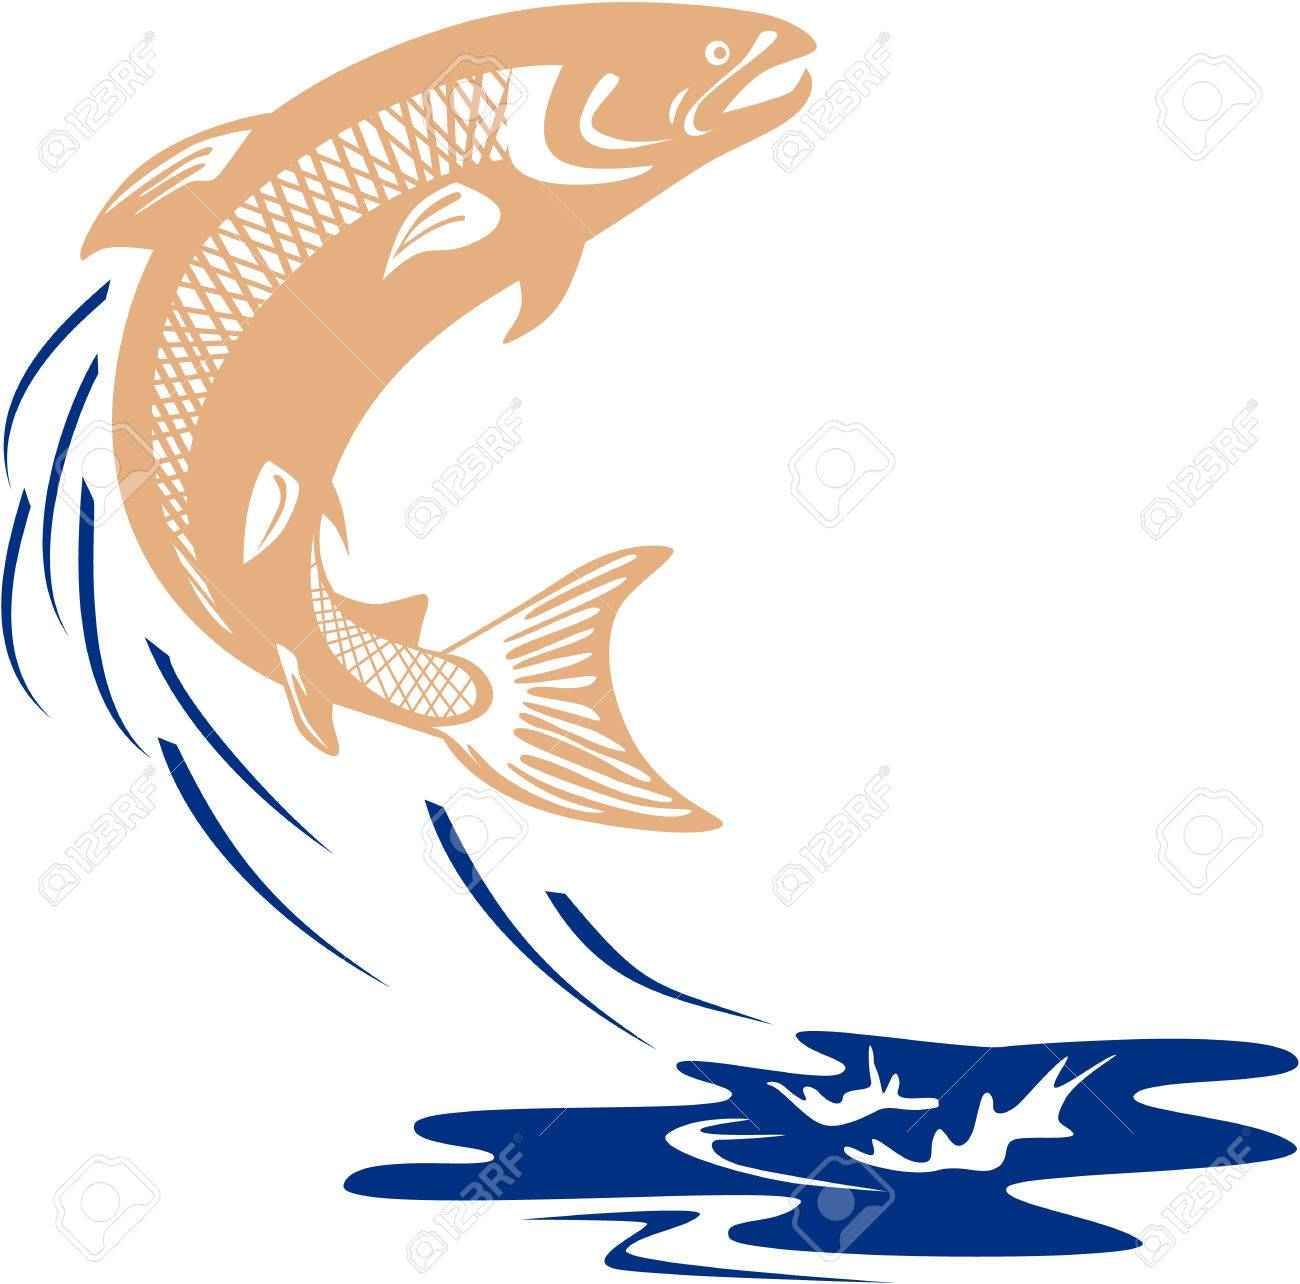 Illustration of a salmon fish jumping in water set on isolated white background viewed from the side done in retro style. - 40080539